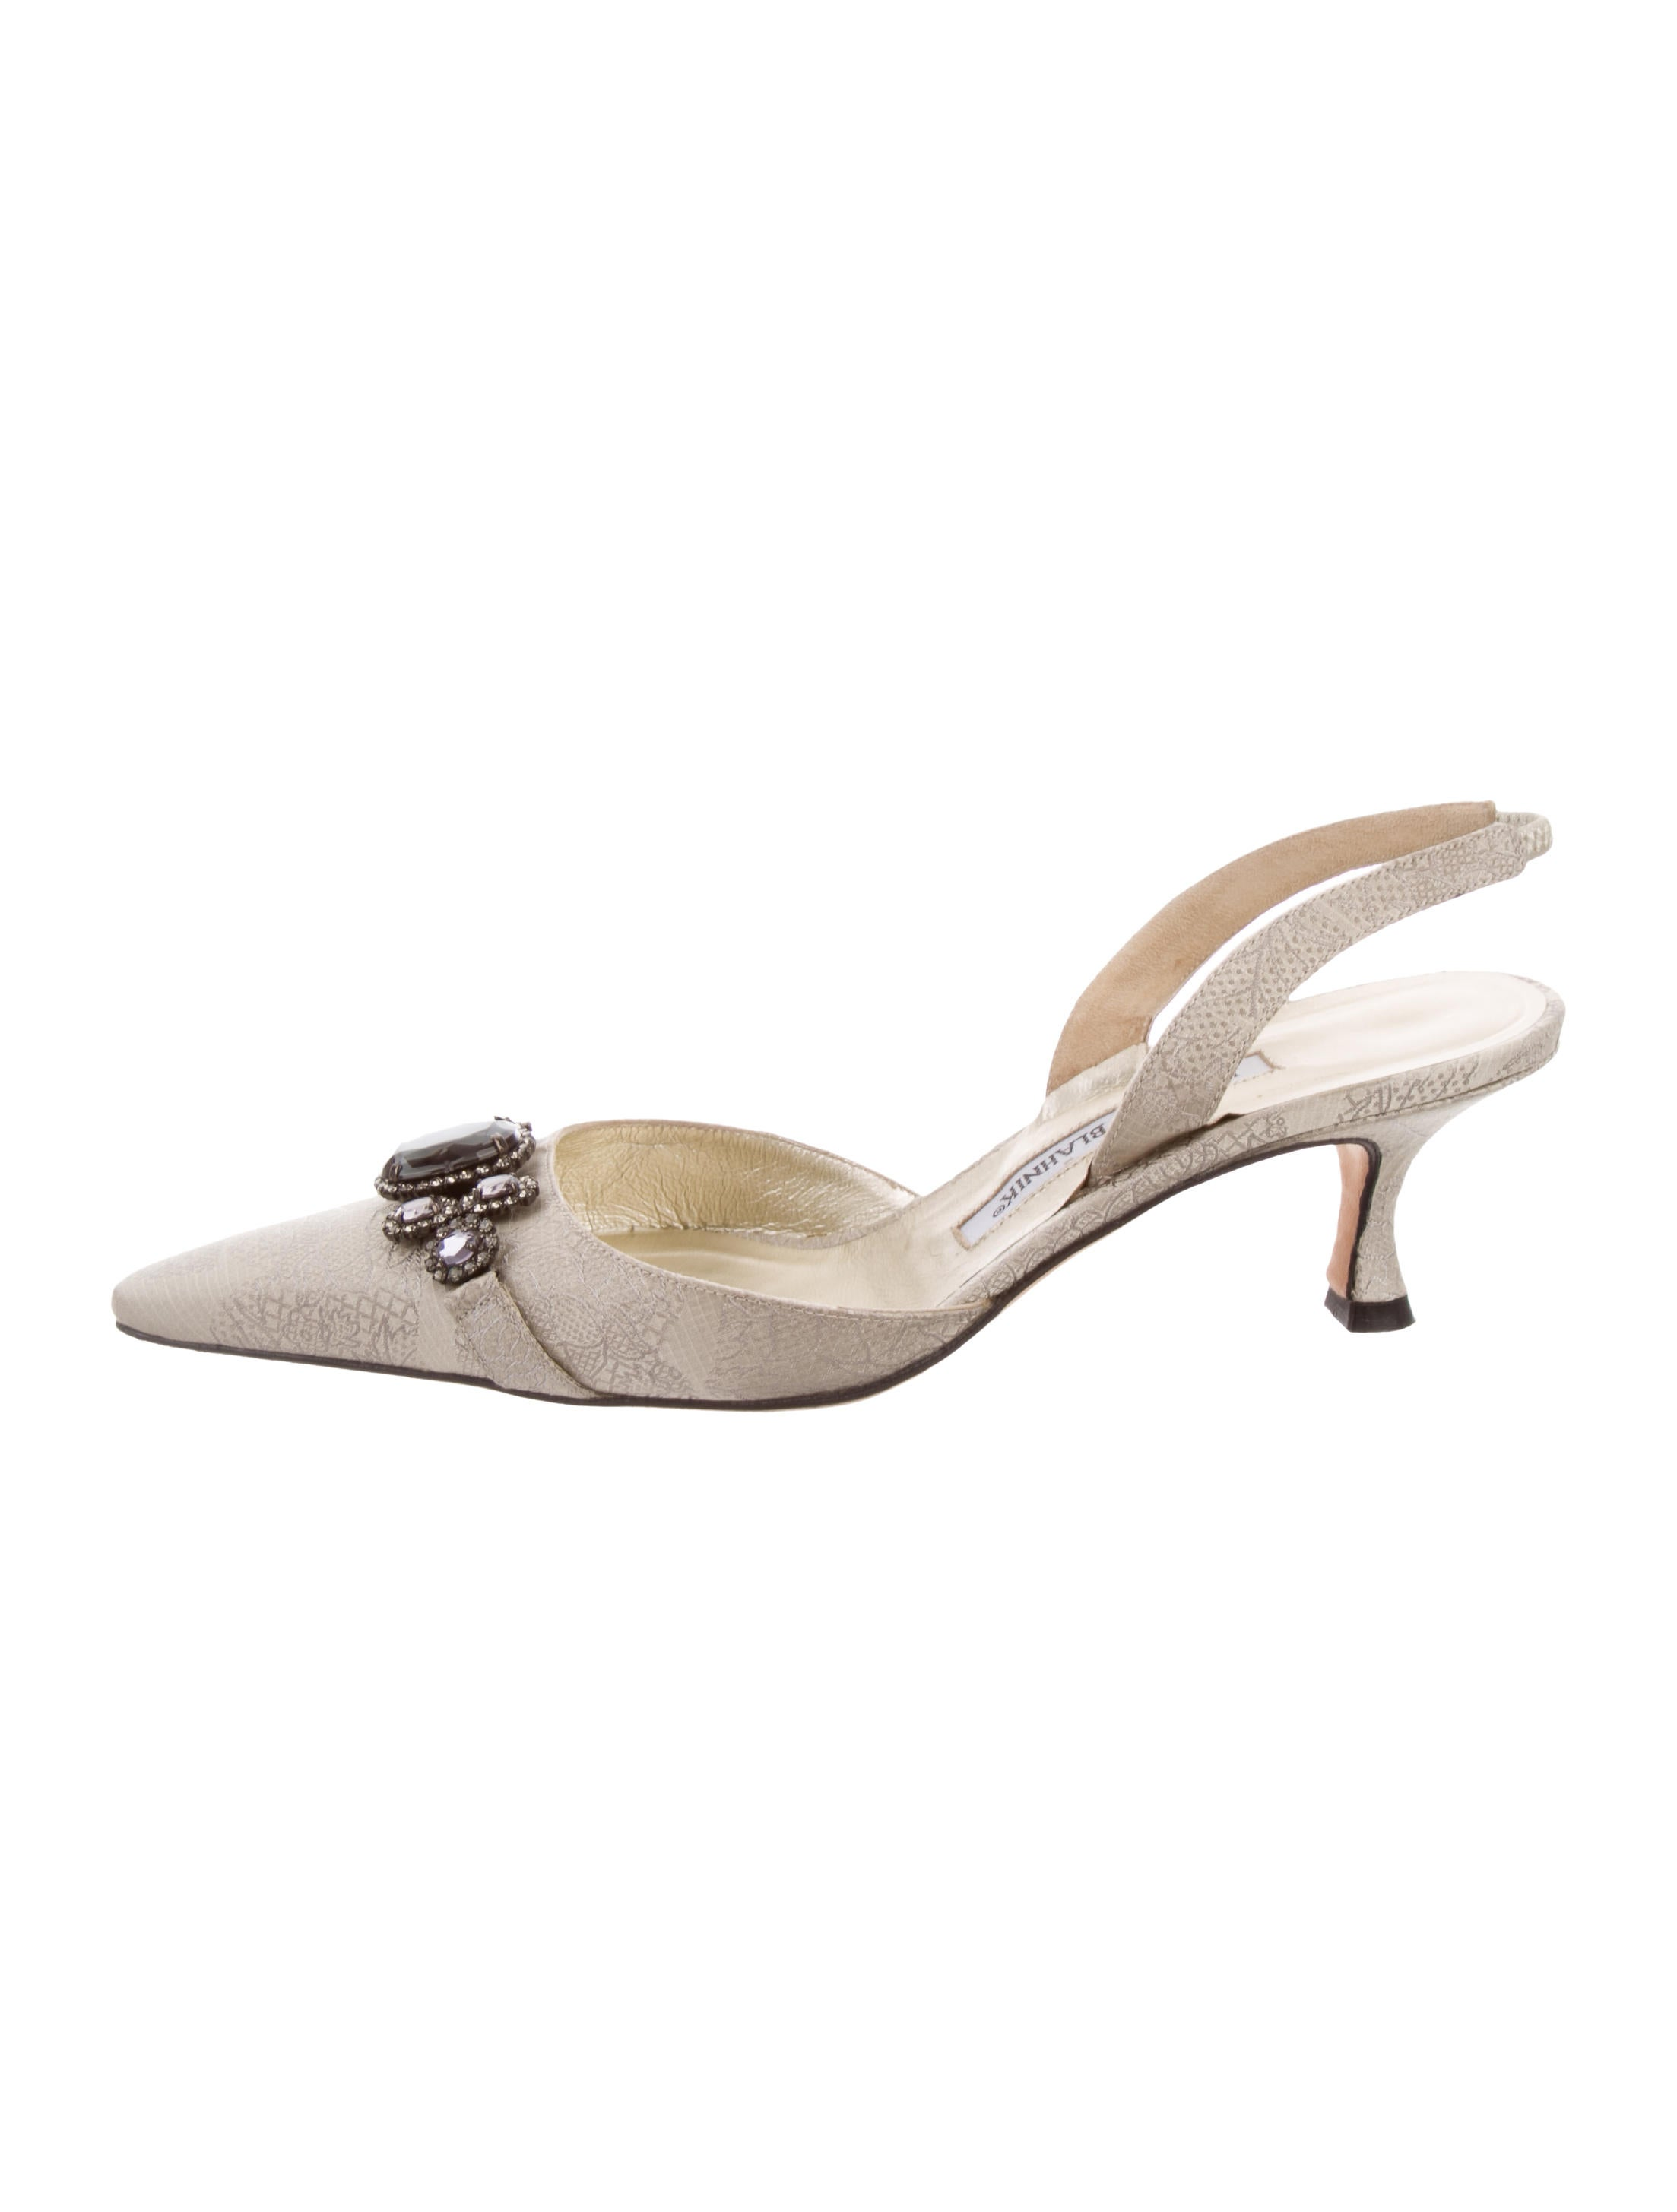 low shipping cheap online Manolo Blahnik Jacquard Slingback Pumps sale how much for cheap price sn1xjC